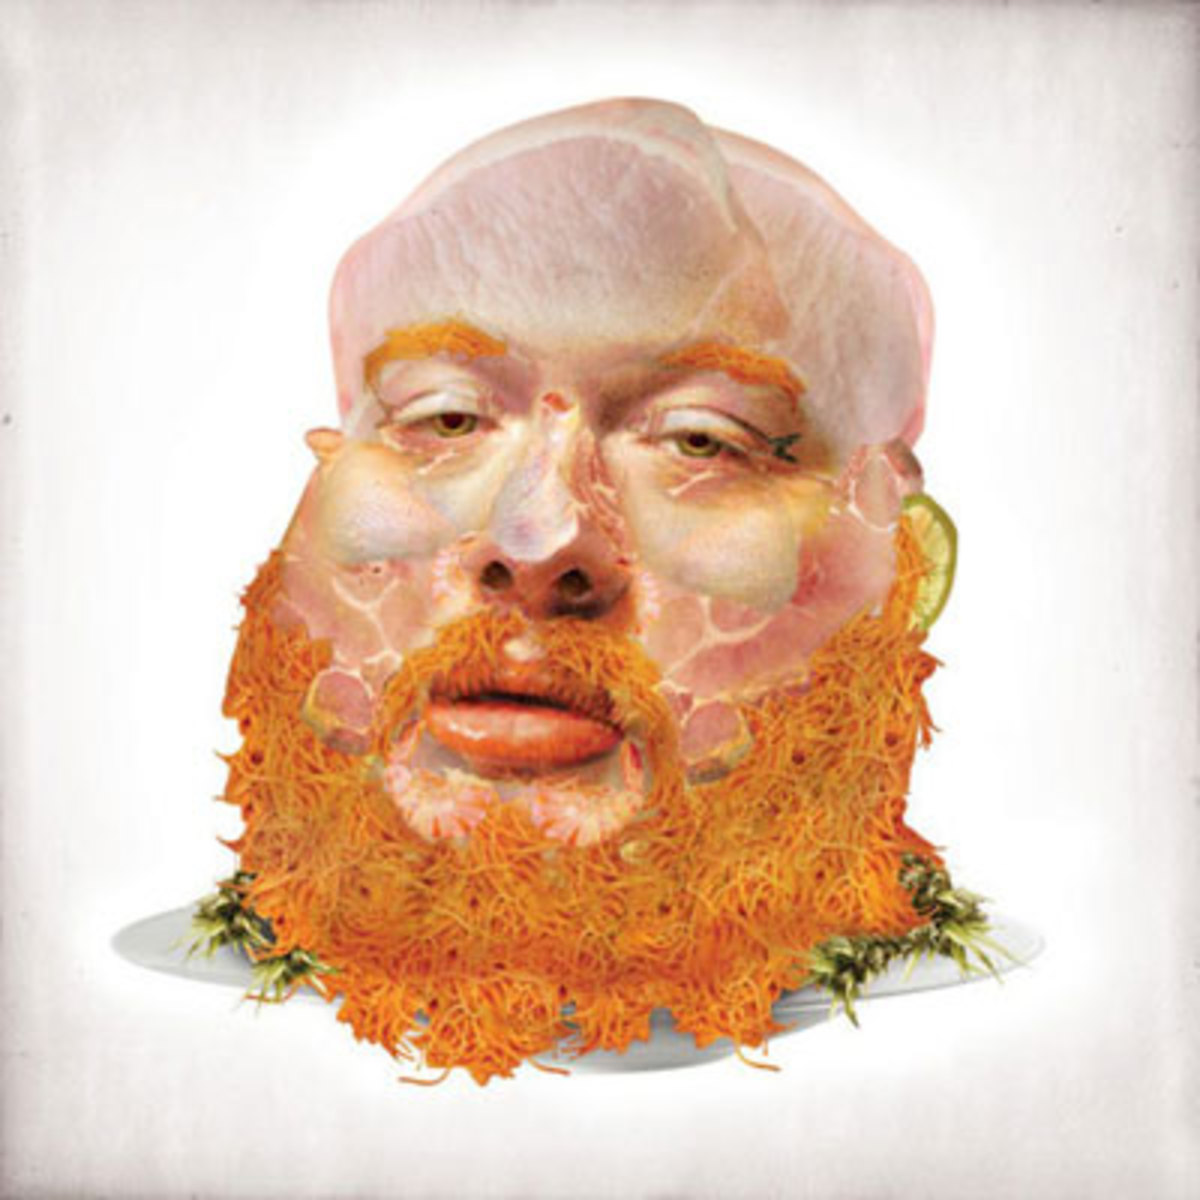 actionbronson-drugsht.jpg